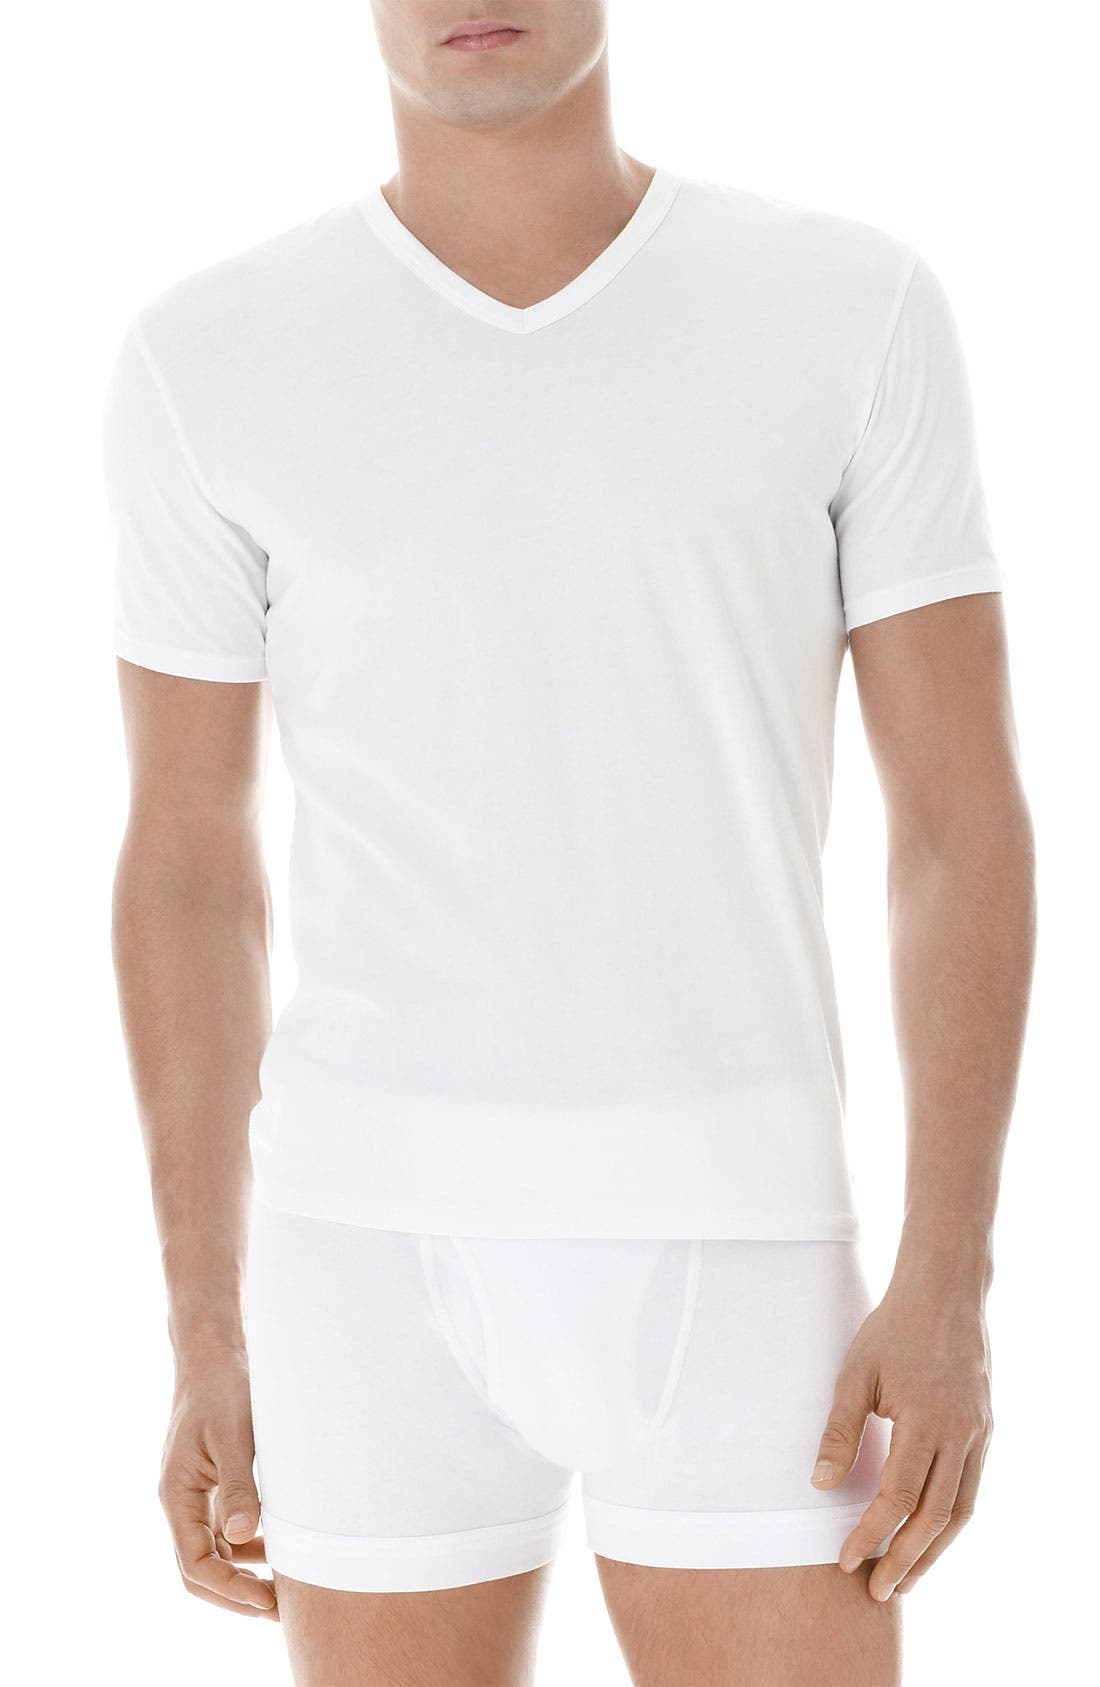 Alternate Image 1 Selected - Calvin Klein Stretch Cotton V-Neck T-Shirt (2-Pack)